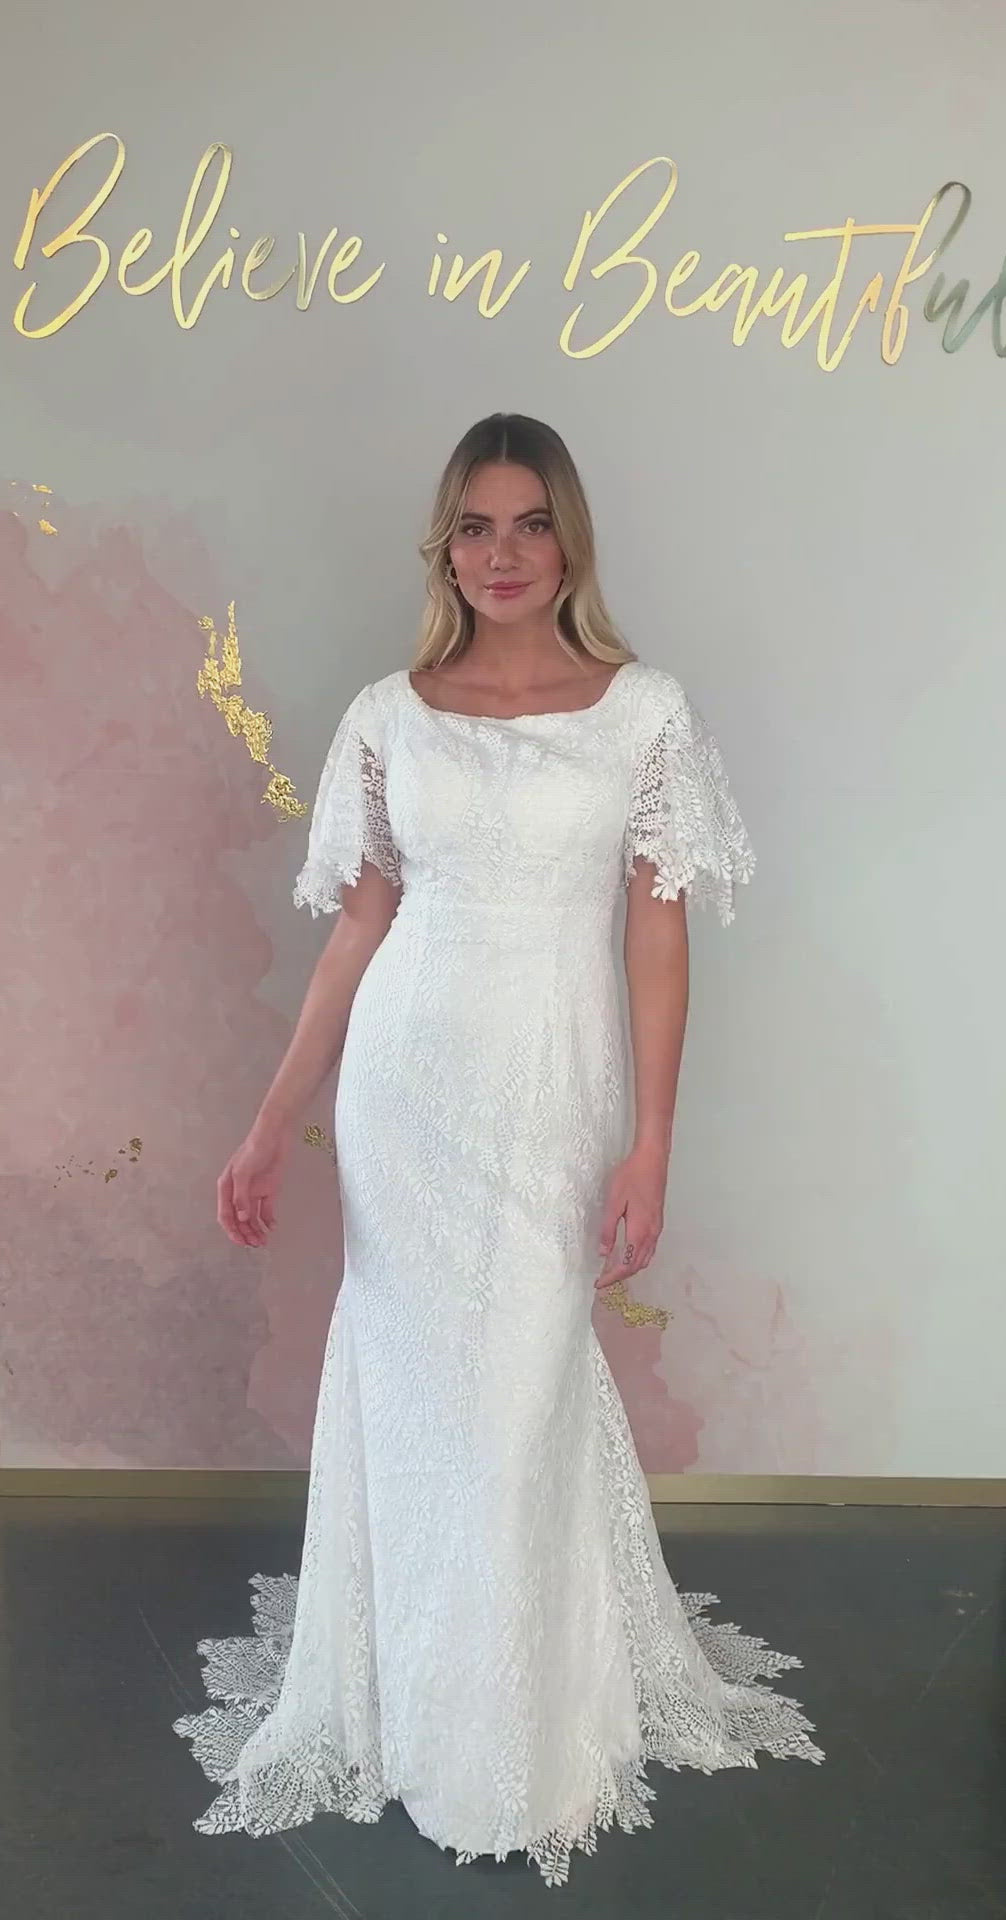 A video featuring our Atwood wedding dress and its boho lace pattern, square neckline, and lace flutter sleeves.